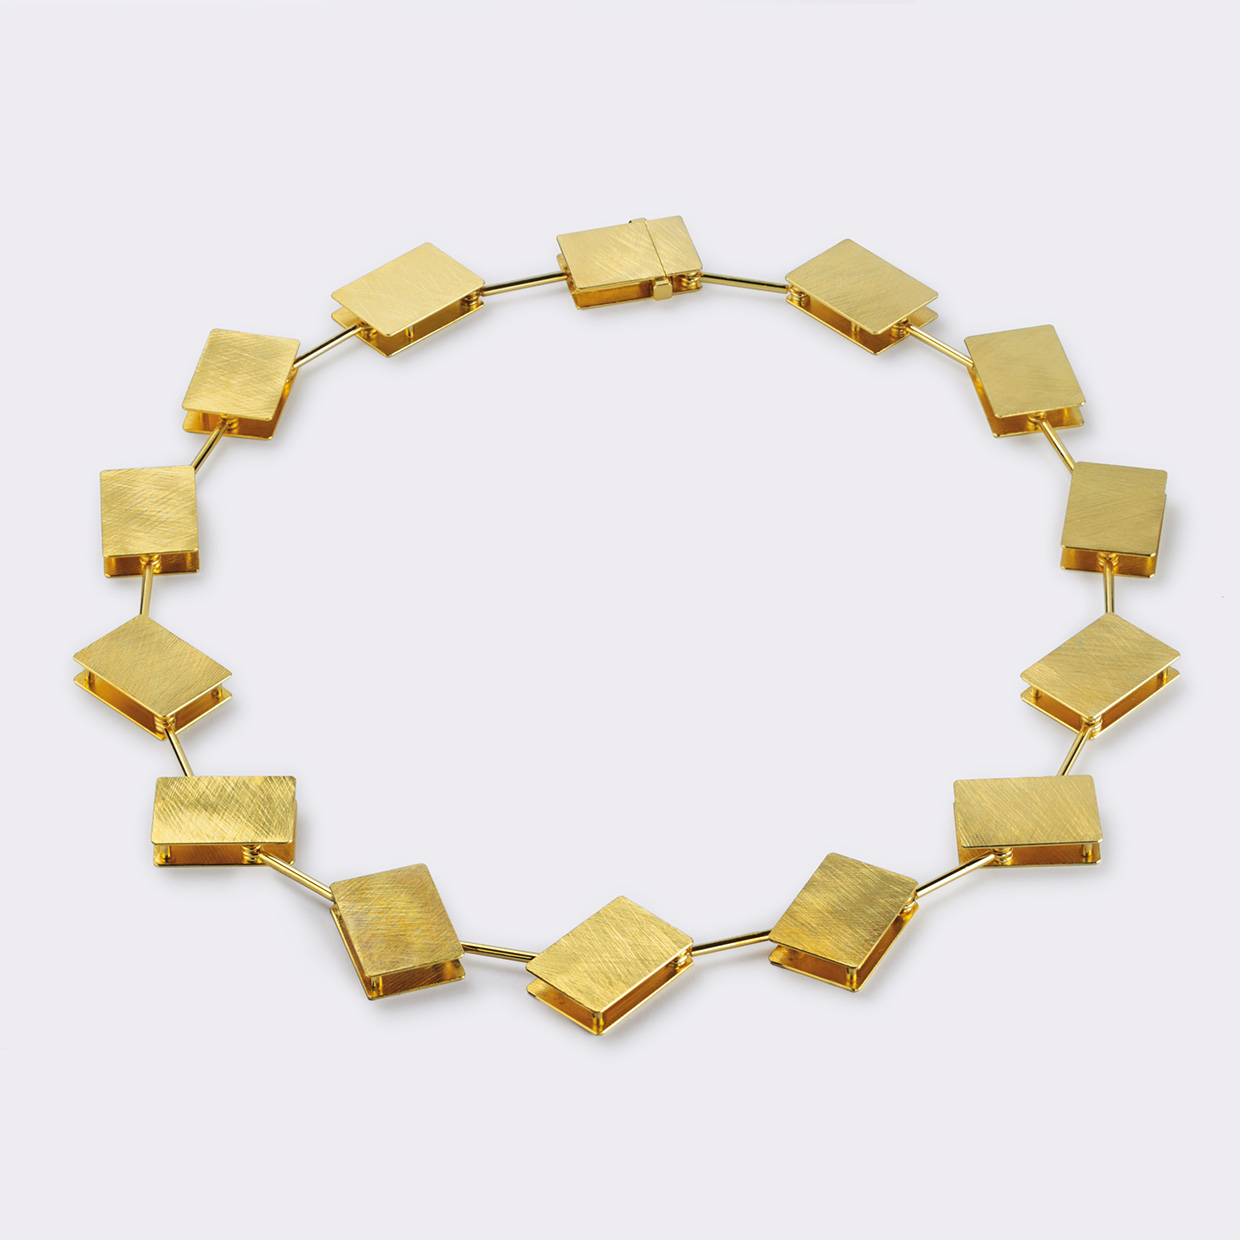 necklace  2009  gold  750  450x20  mm